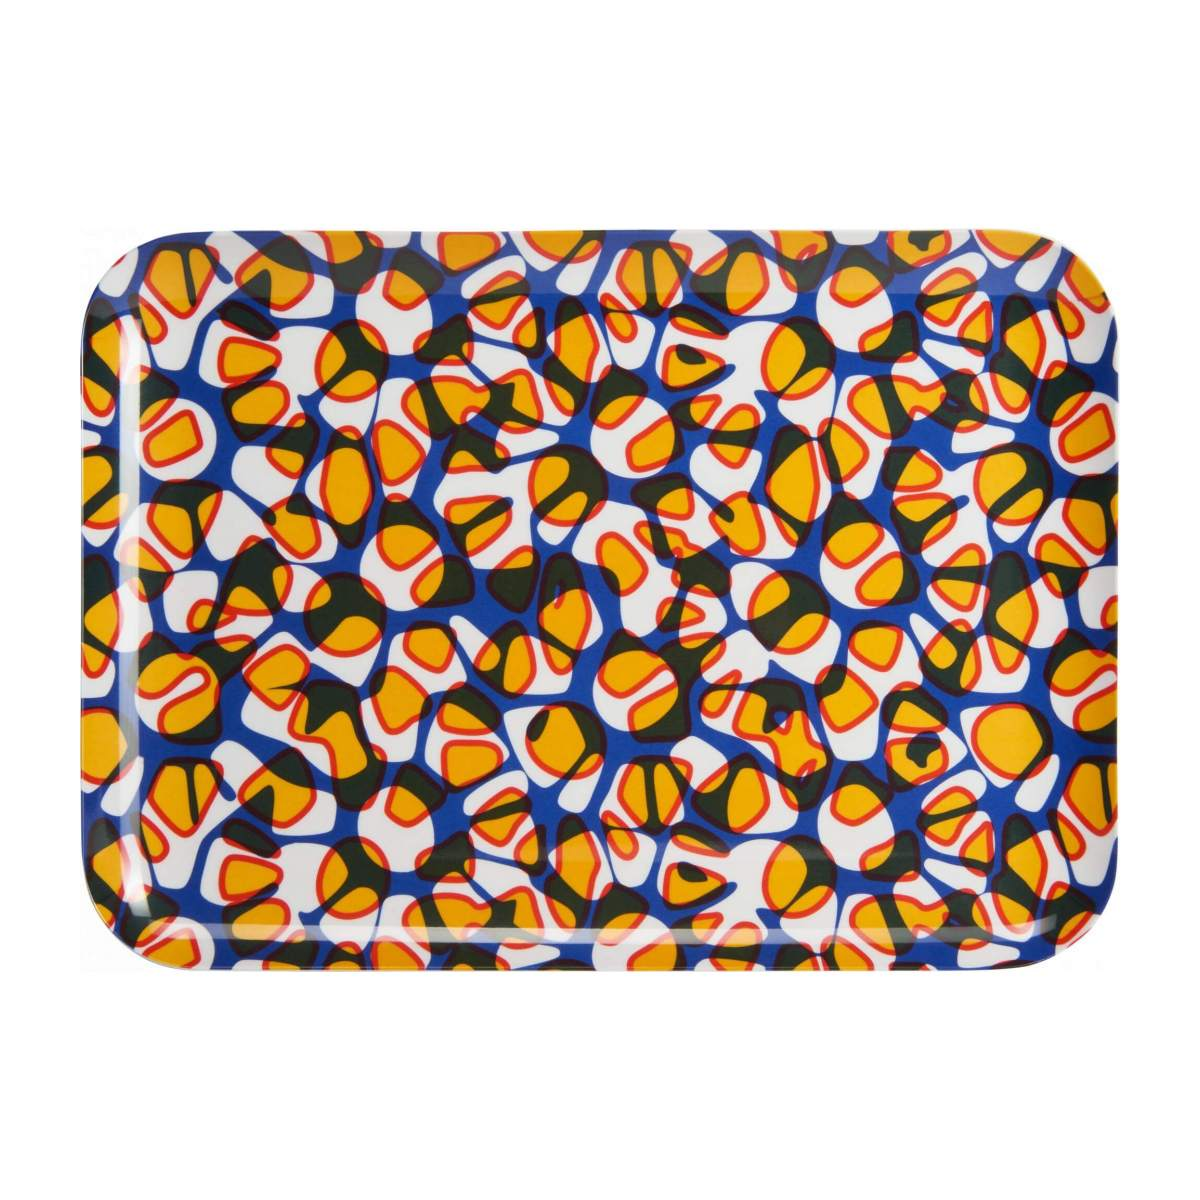 Tray made of melamine 35x25cm, with patterns n°3